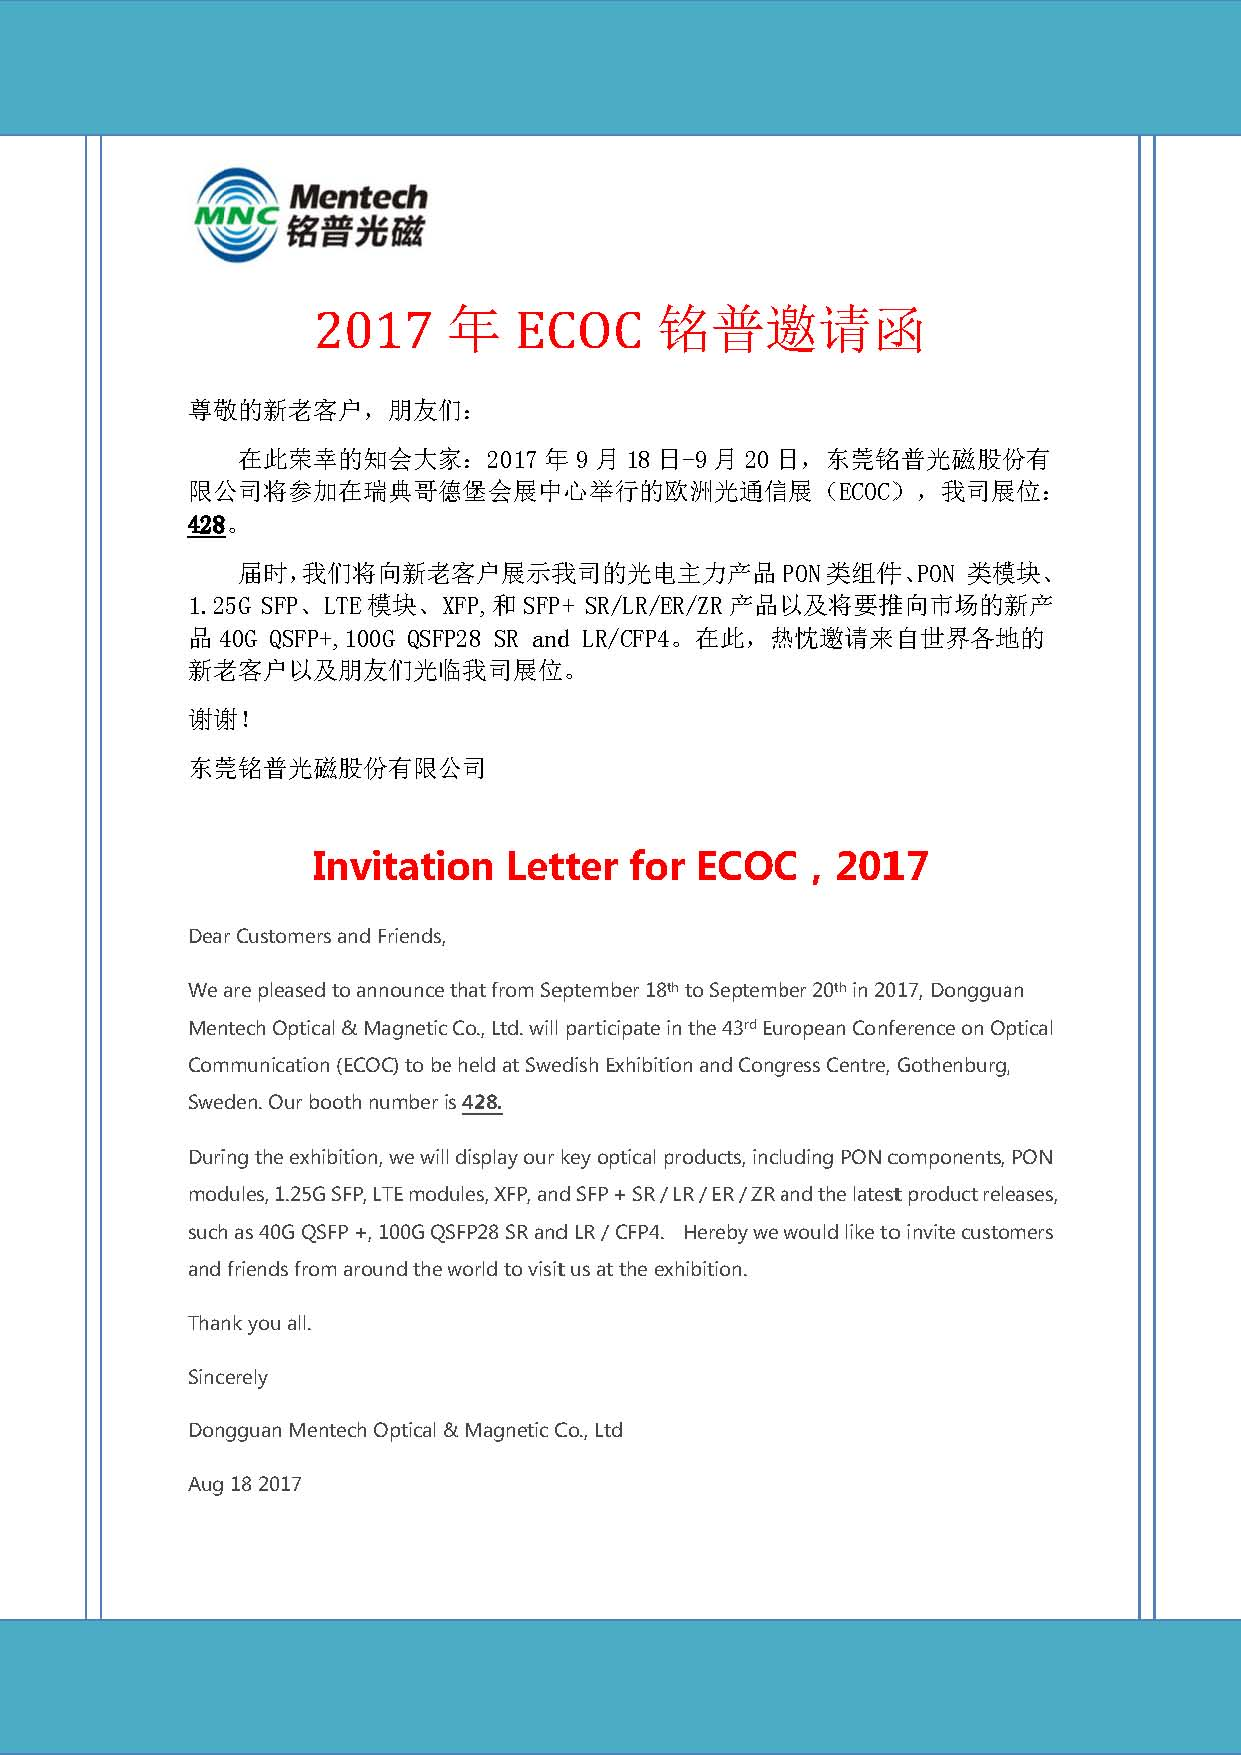 Invitation letter for ecoc2017 industry news invitation letter for ecoc2017 stopboris Choice Image